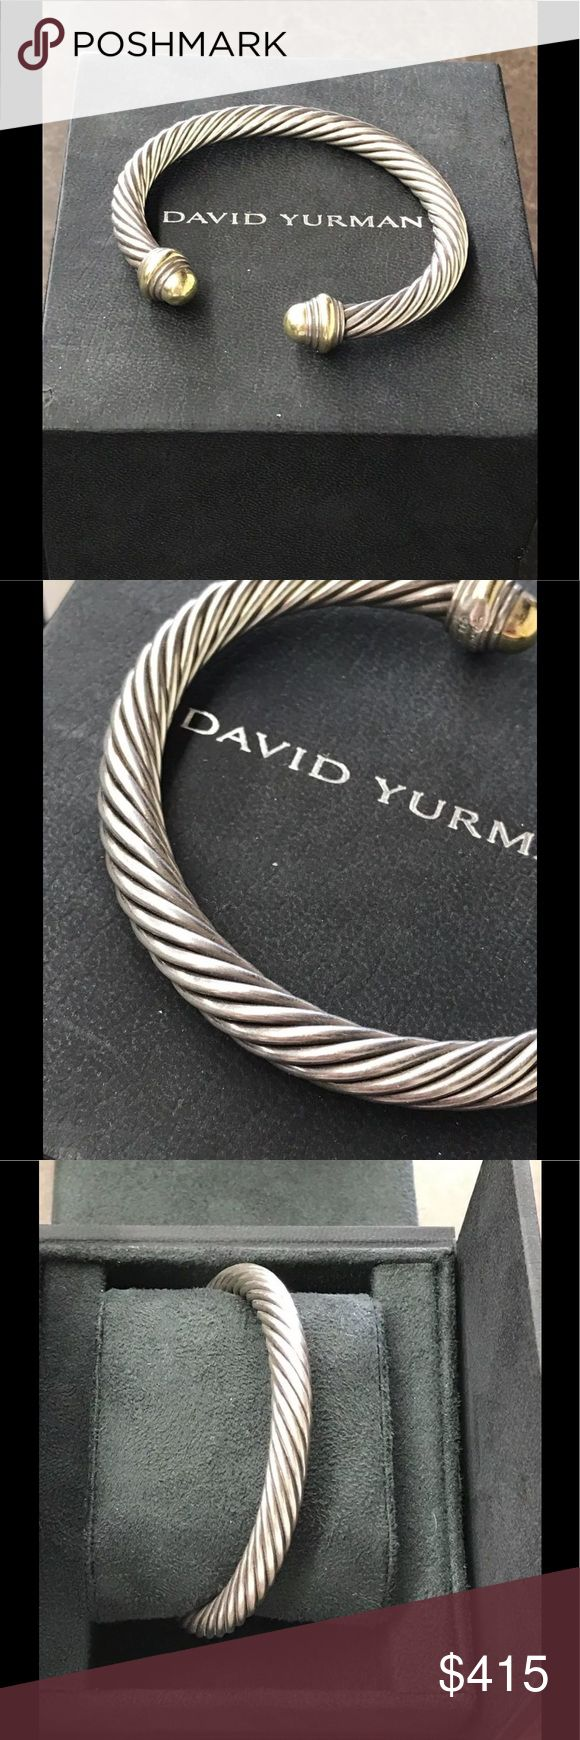 David Yurman Cable Bracelet 14K Gold Domes David Yurman 925 Cable Classics Bracelet with 14k Gold domes. This Bracelet is in great condition. The sterling silver doesn't have any deep gouges or scratches. The gold domes, which frequently are dented when pre-owne, are pristine. Bracelet is size medium- fits 75% of women. David Yurman Jewelry Bracelets